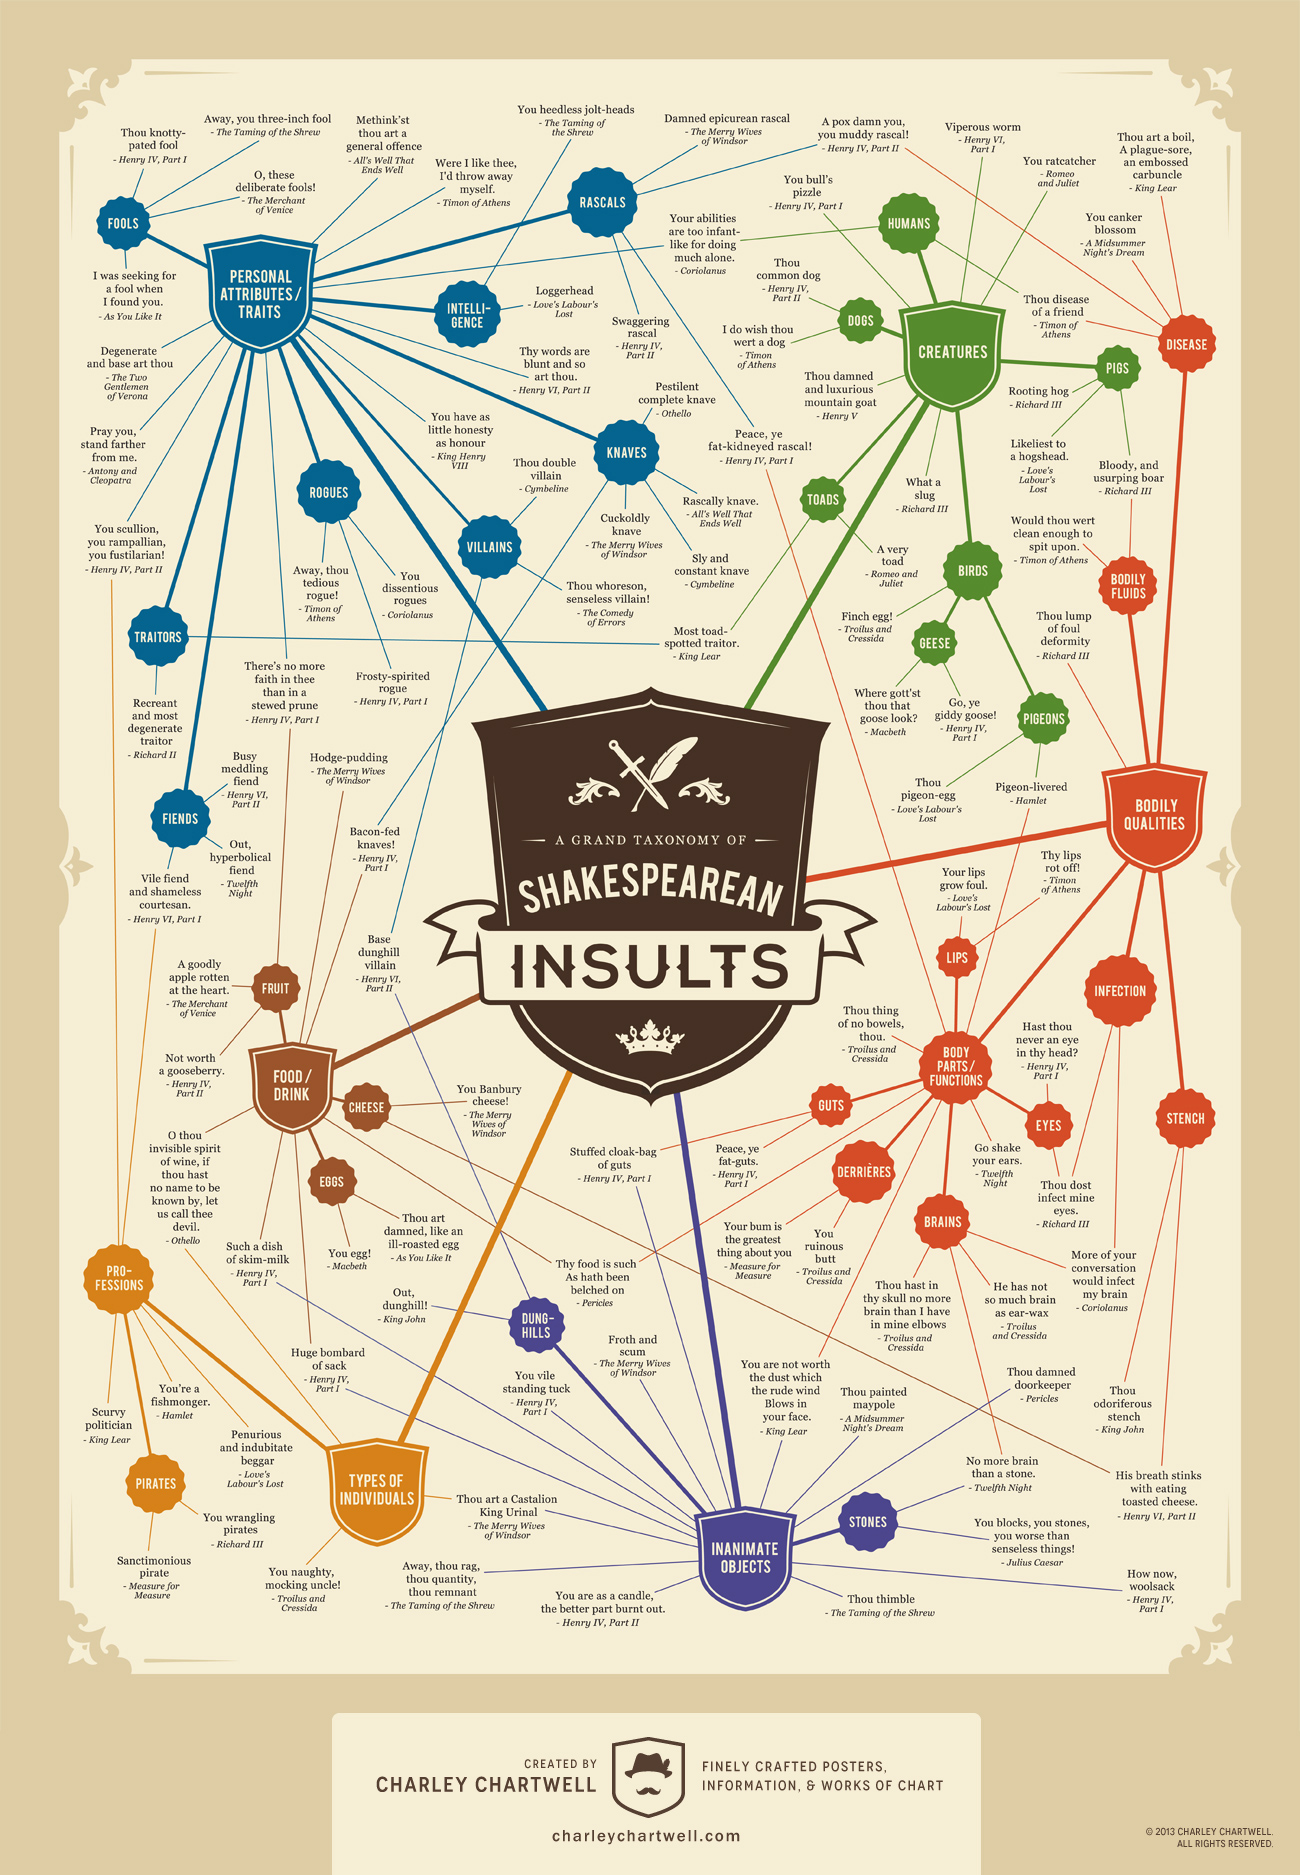 A Grand Taxonomy of Shakespearean Insults | Visual.ly